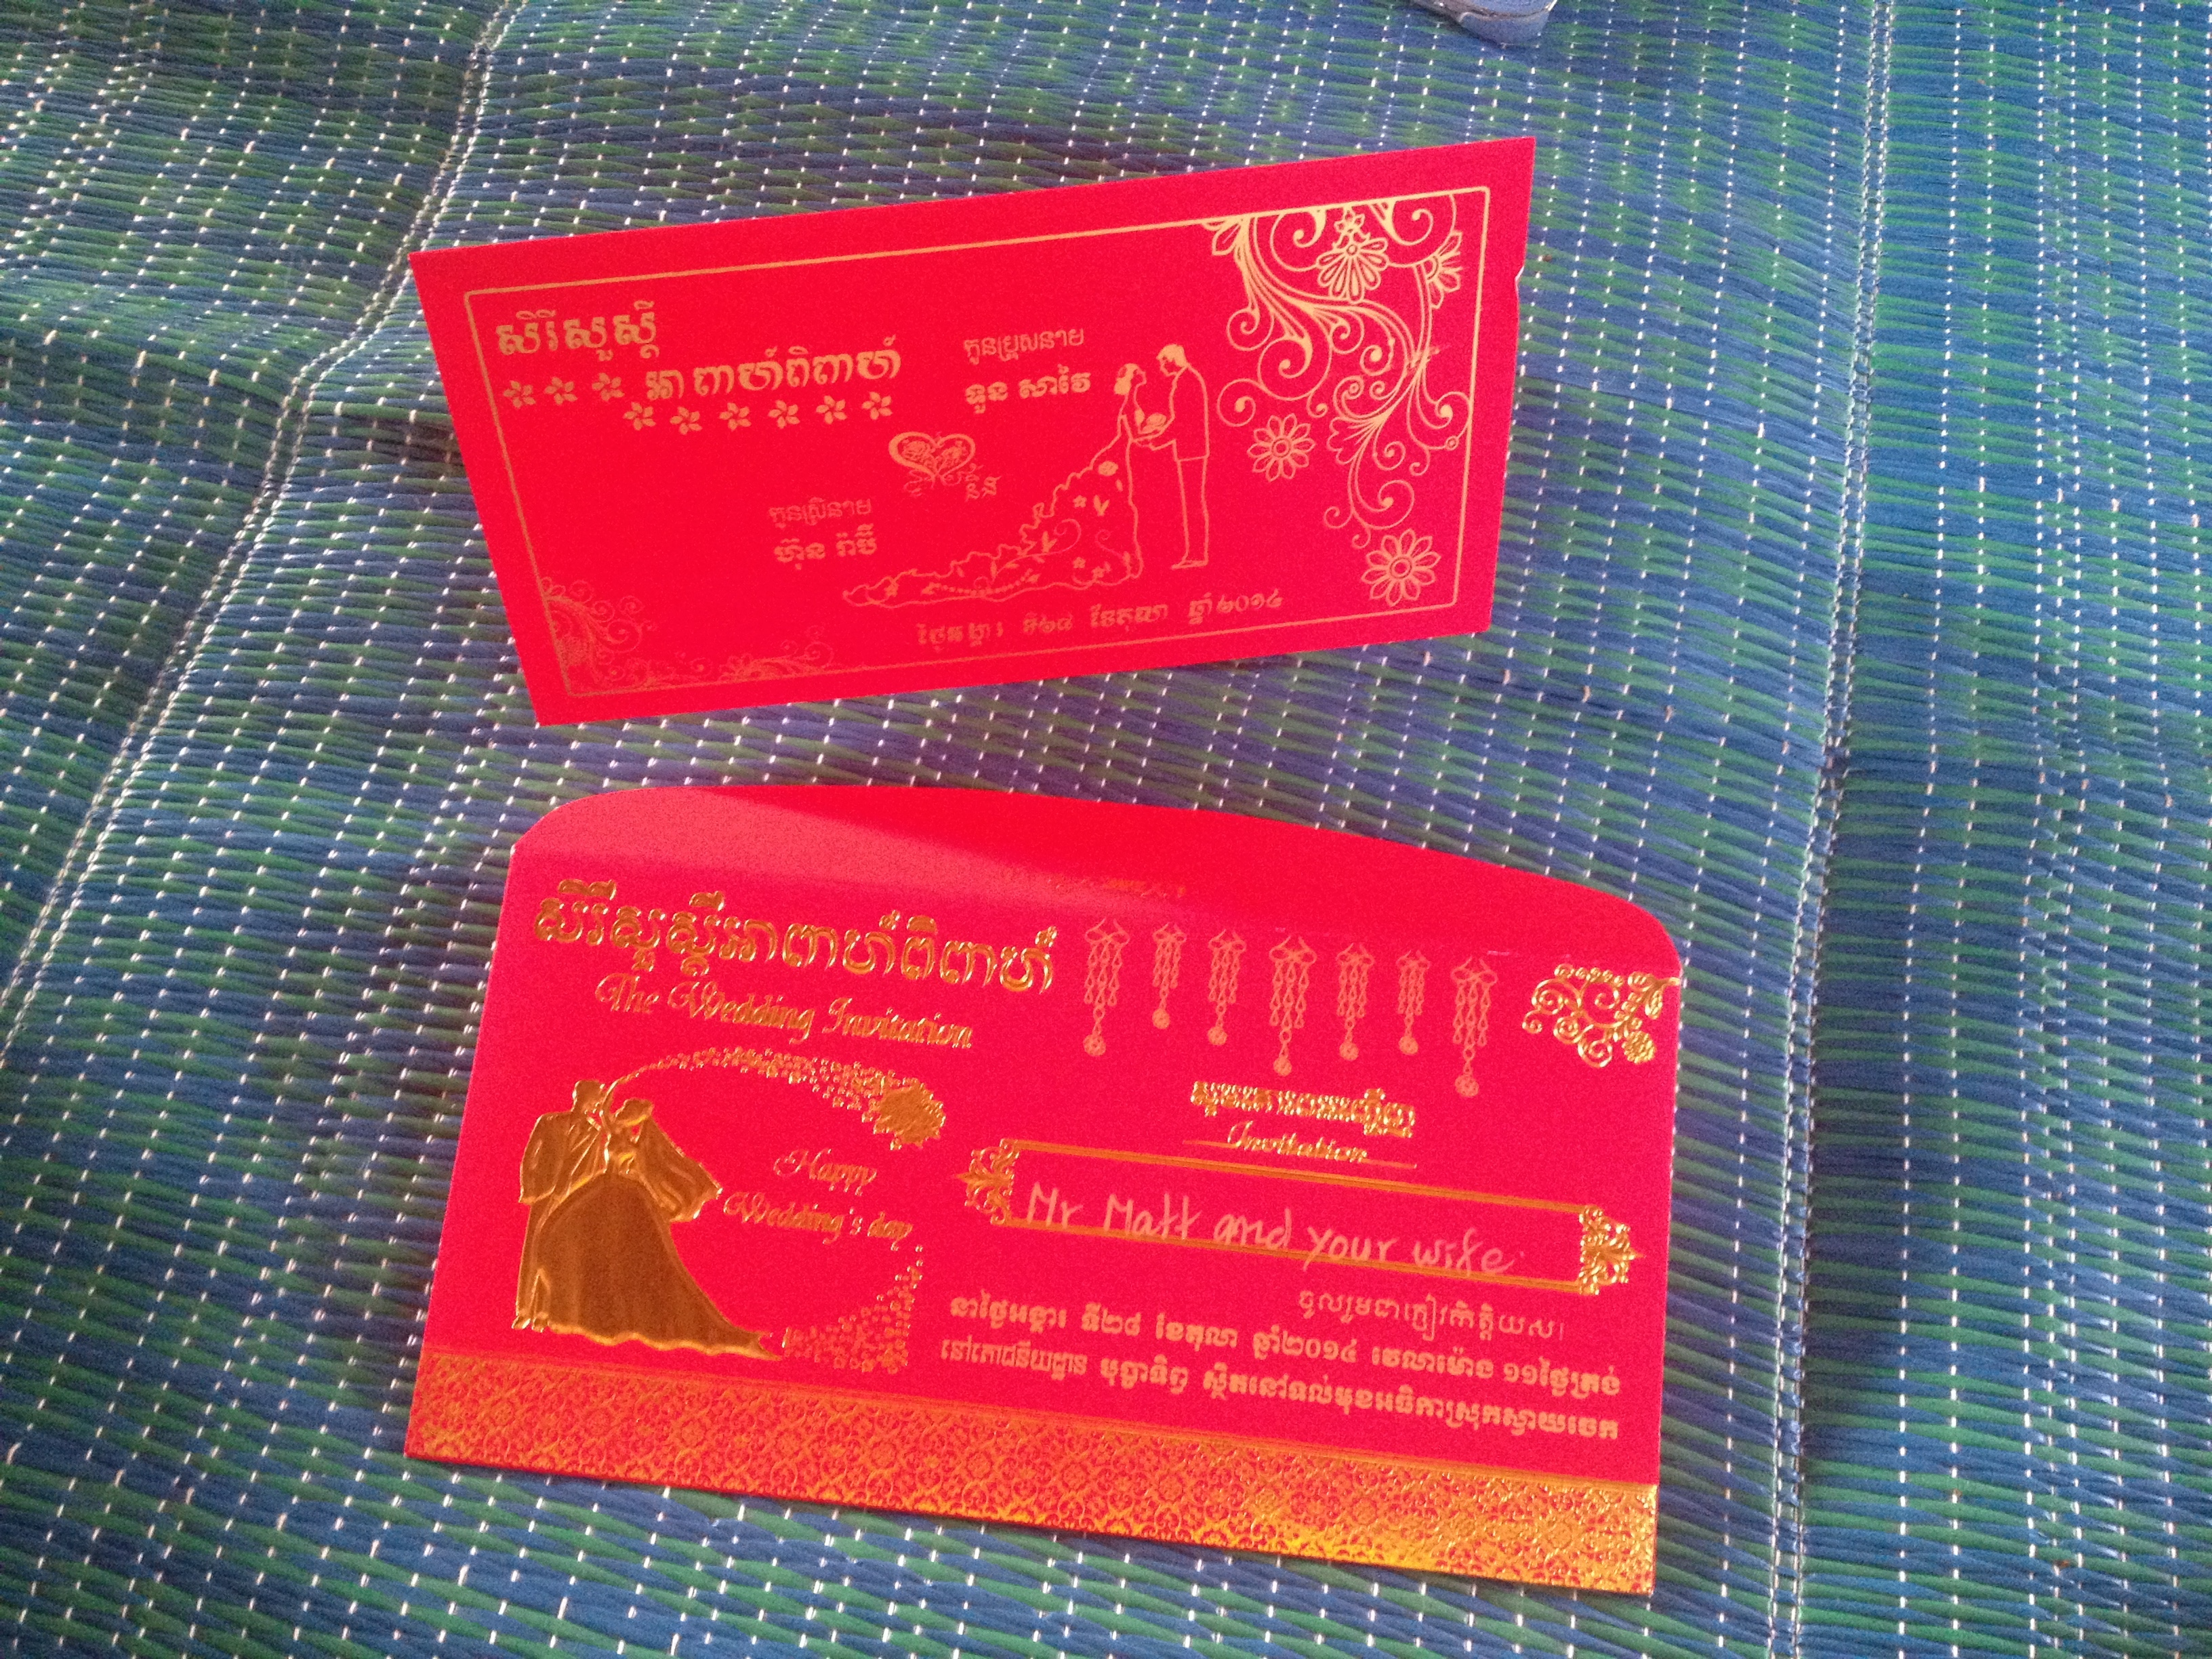 Khmer Wedding Invitations: Cambodian Cultural Events In Ten Parts